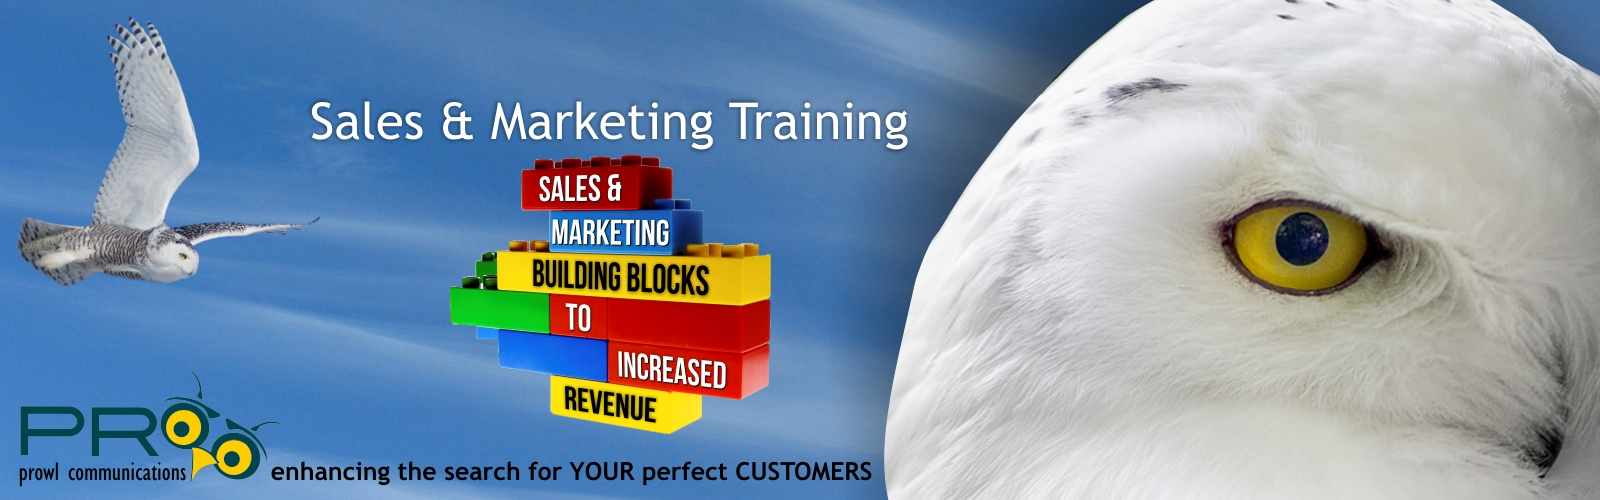 Prowl logo, snowy owl, building blocks, sales, marketing, revenue